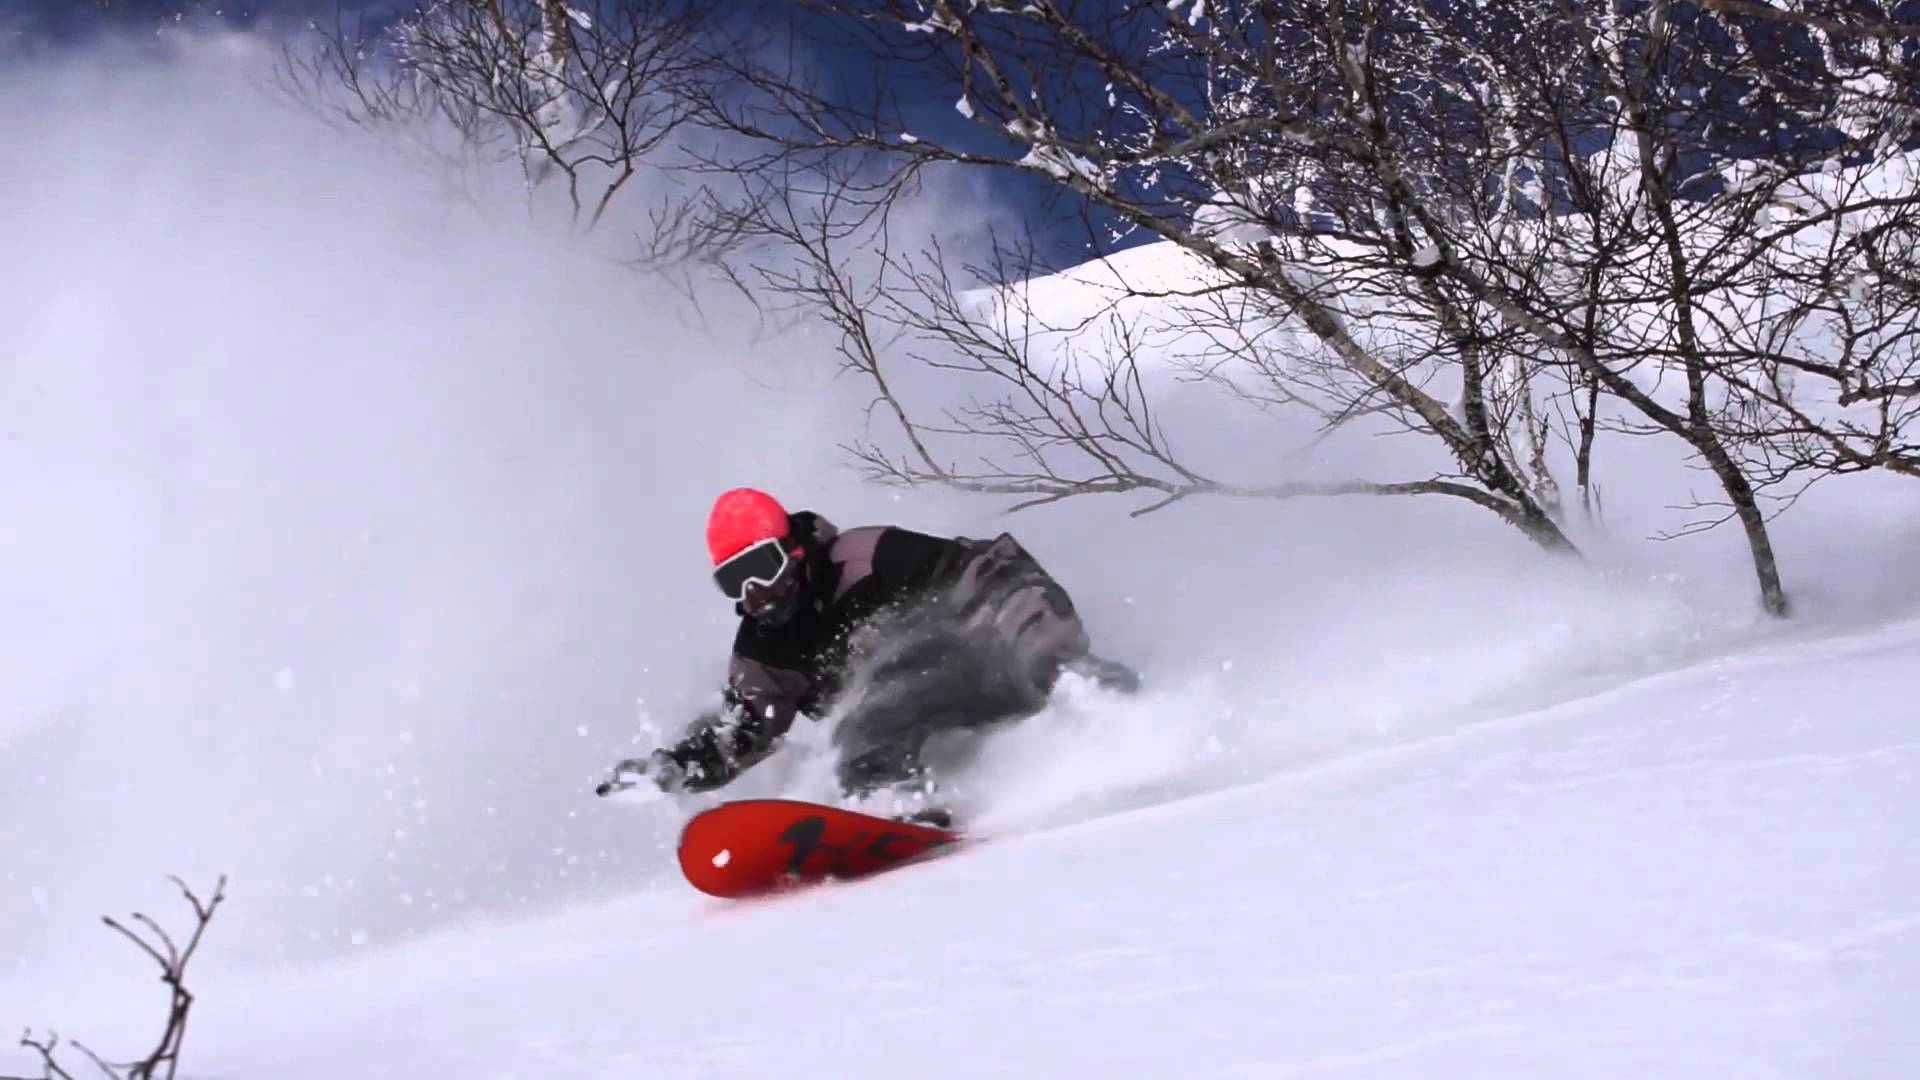 snowboarding Japanese powder